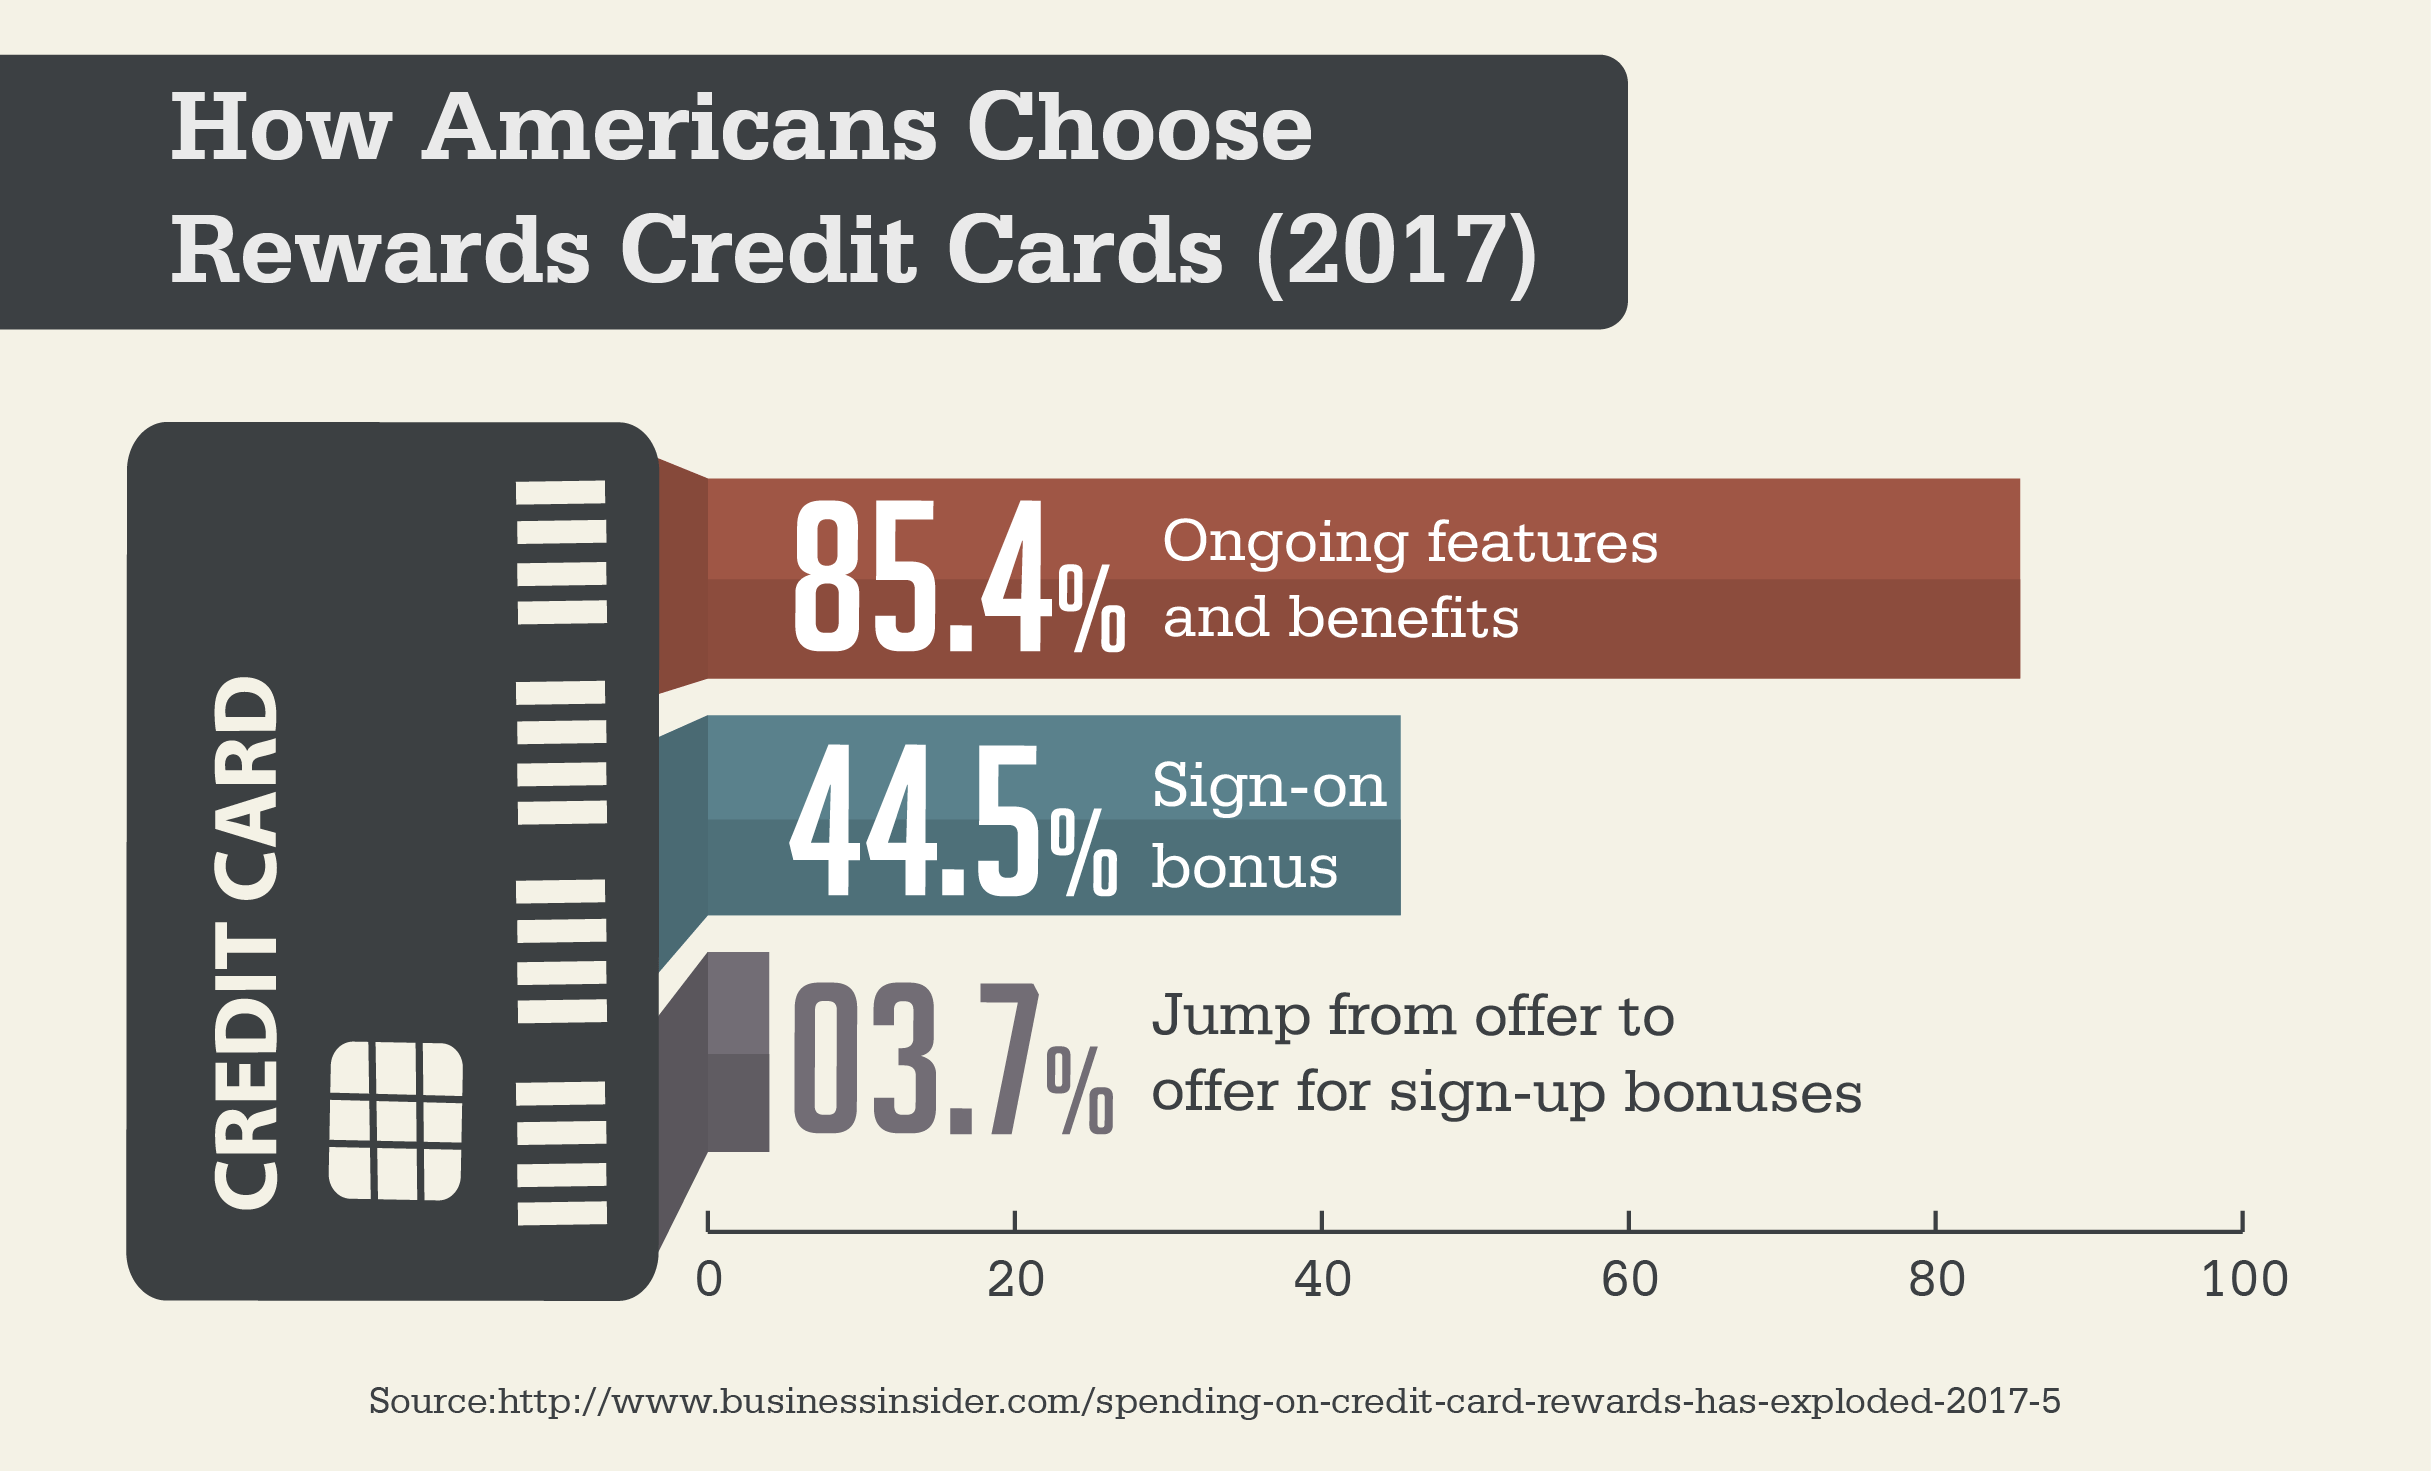 How Americans Choose Rewards Credit Cards (2017)